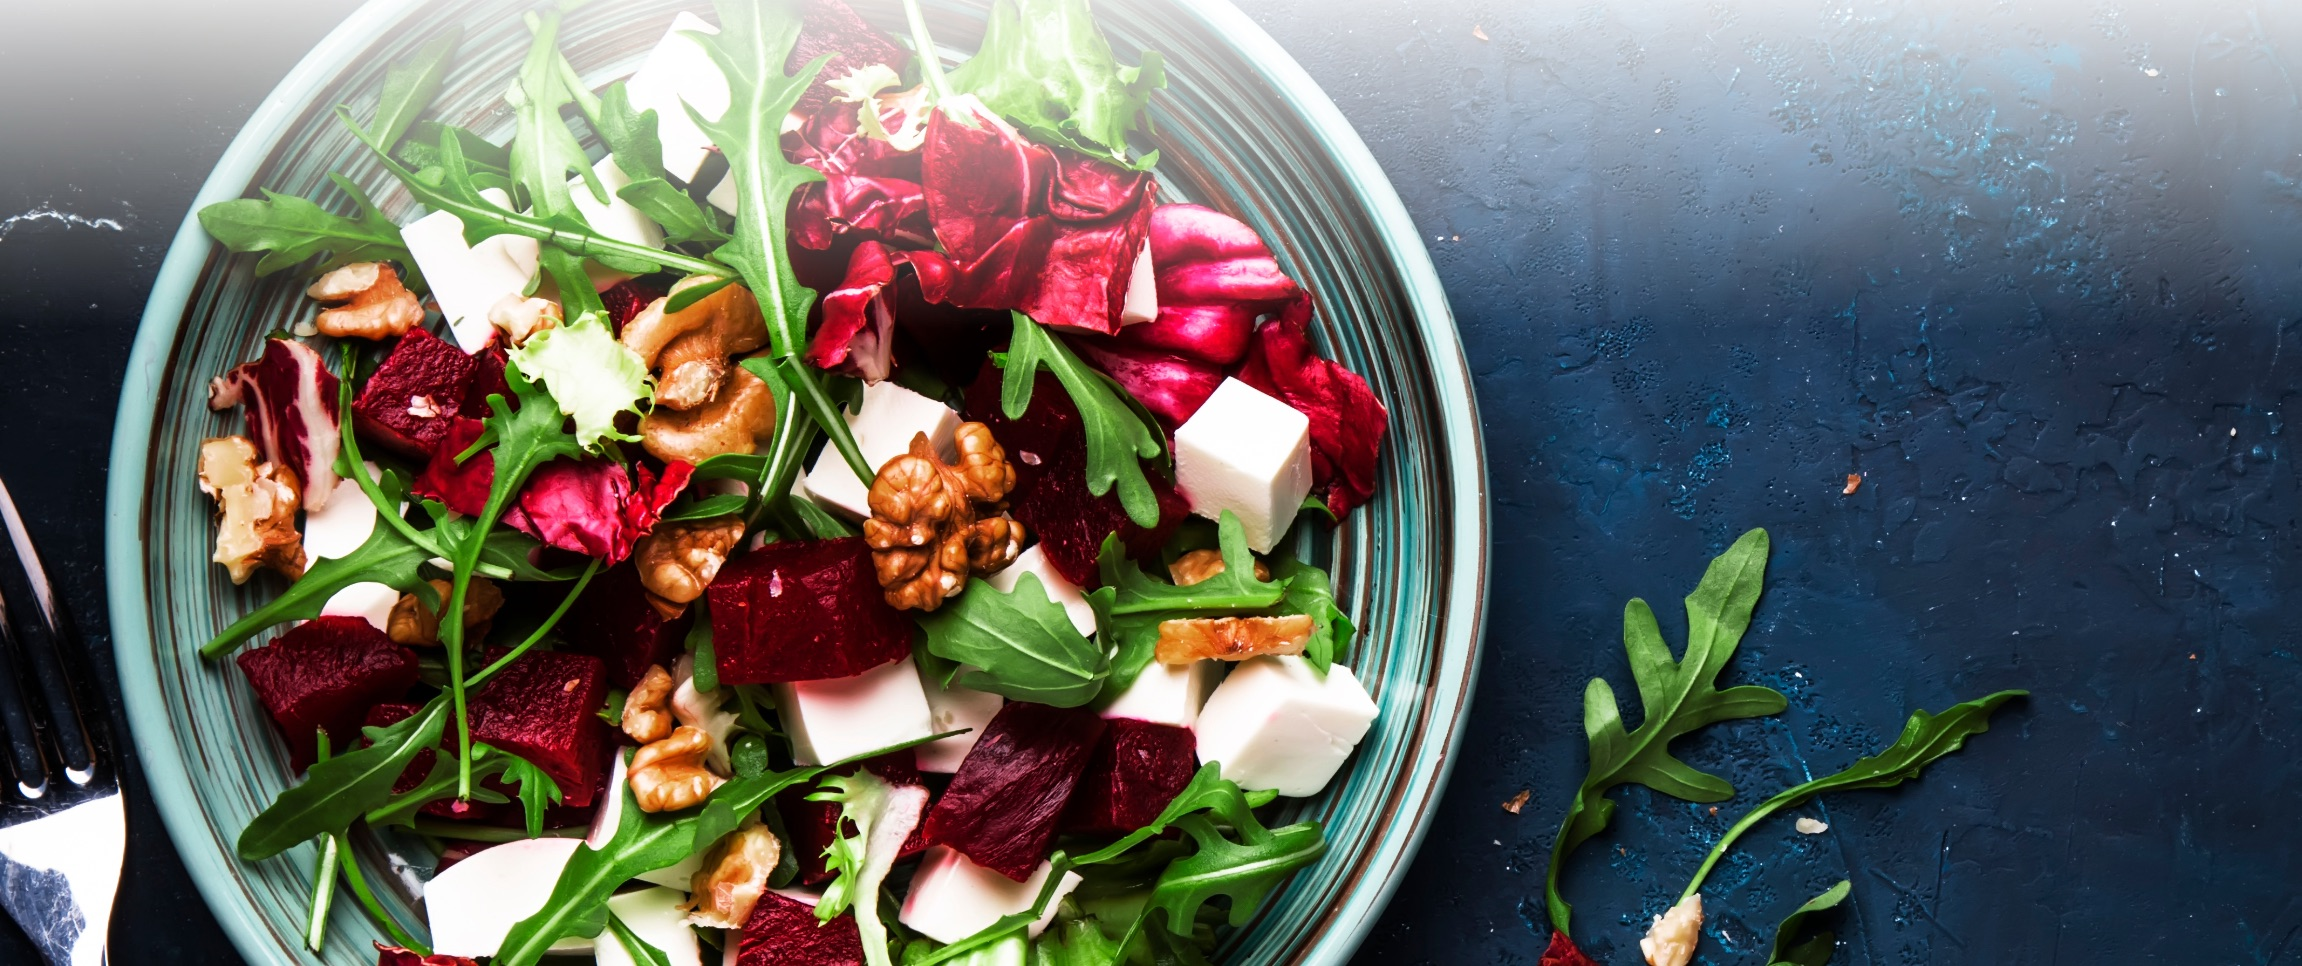 Grilled Radicchio Salad with Blue Cheese Crumbles